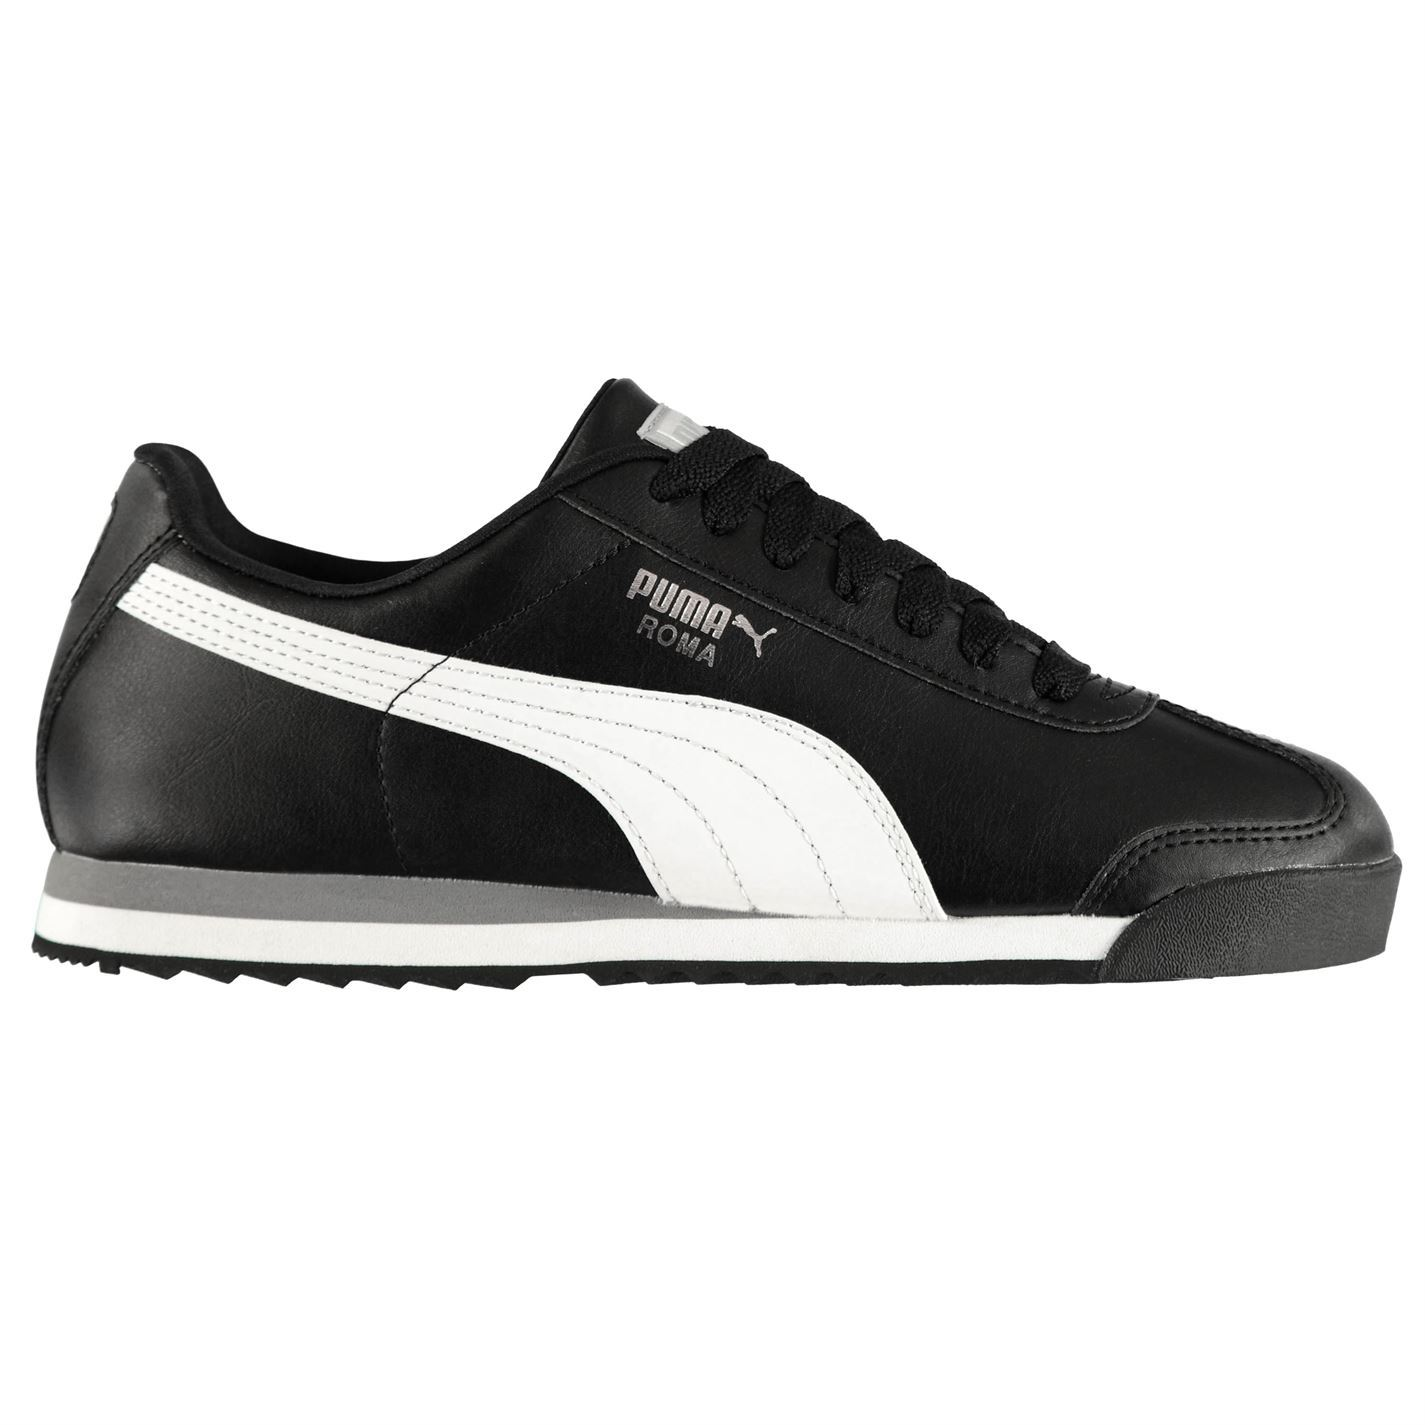 Puma-Roma-Basic-Trainers-Mens-Athleisure-Footwear-Shoes-Sneakers thumbnail 10